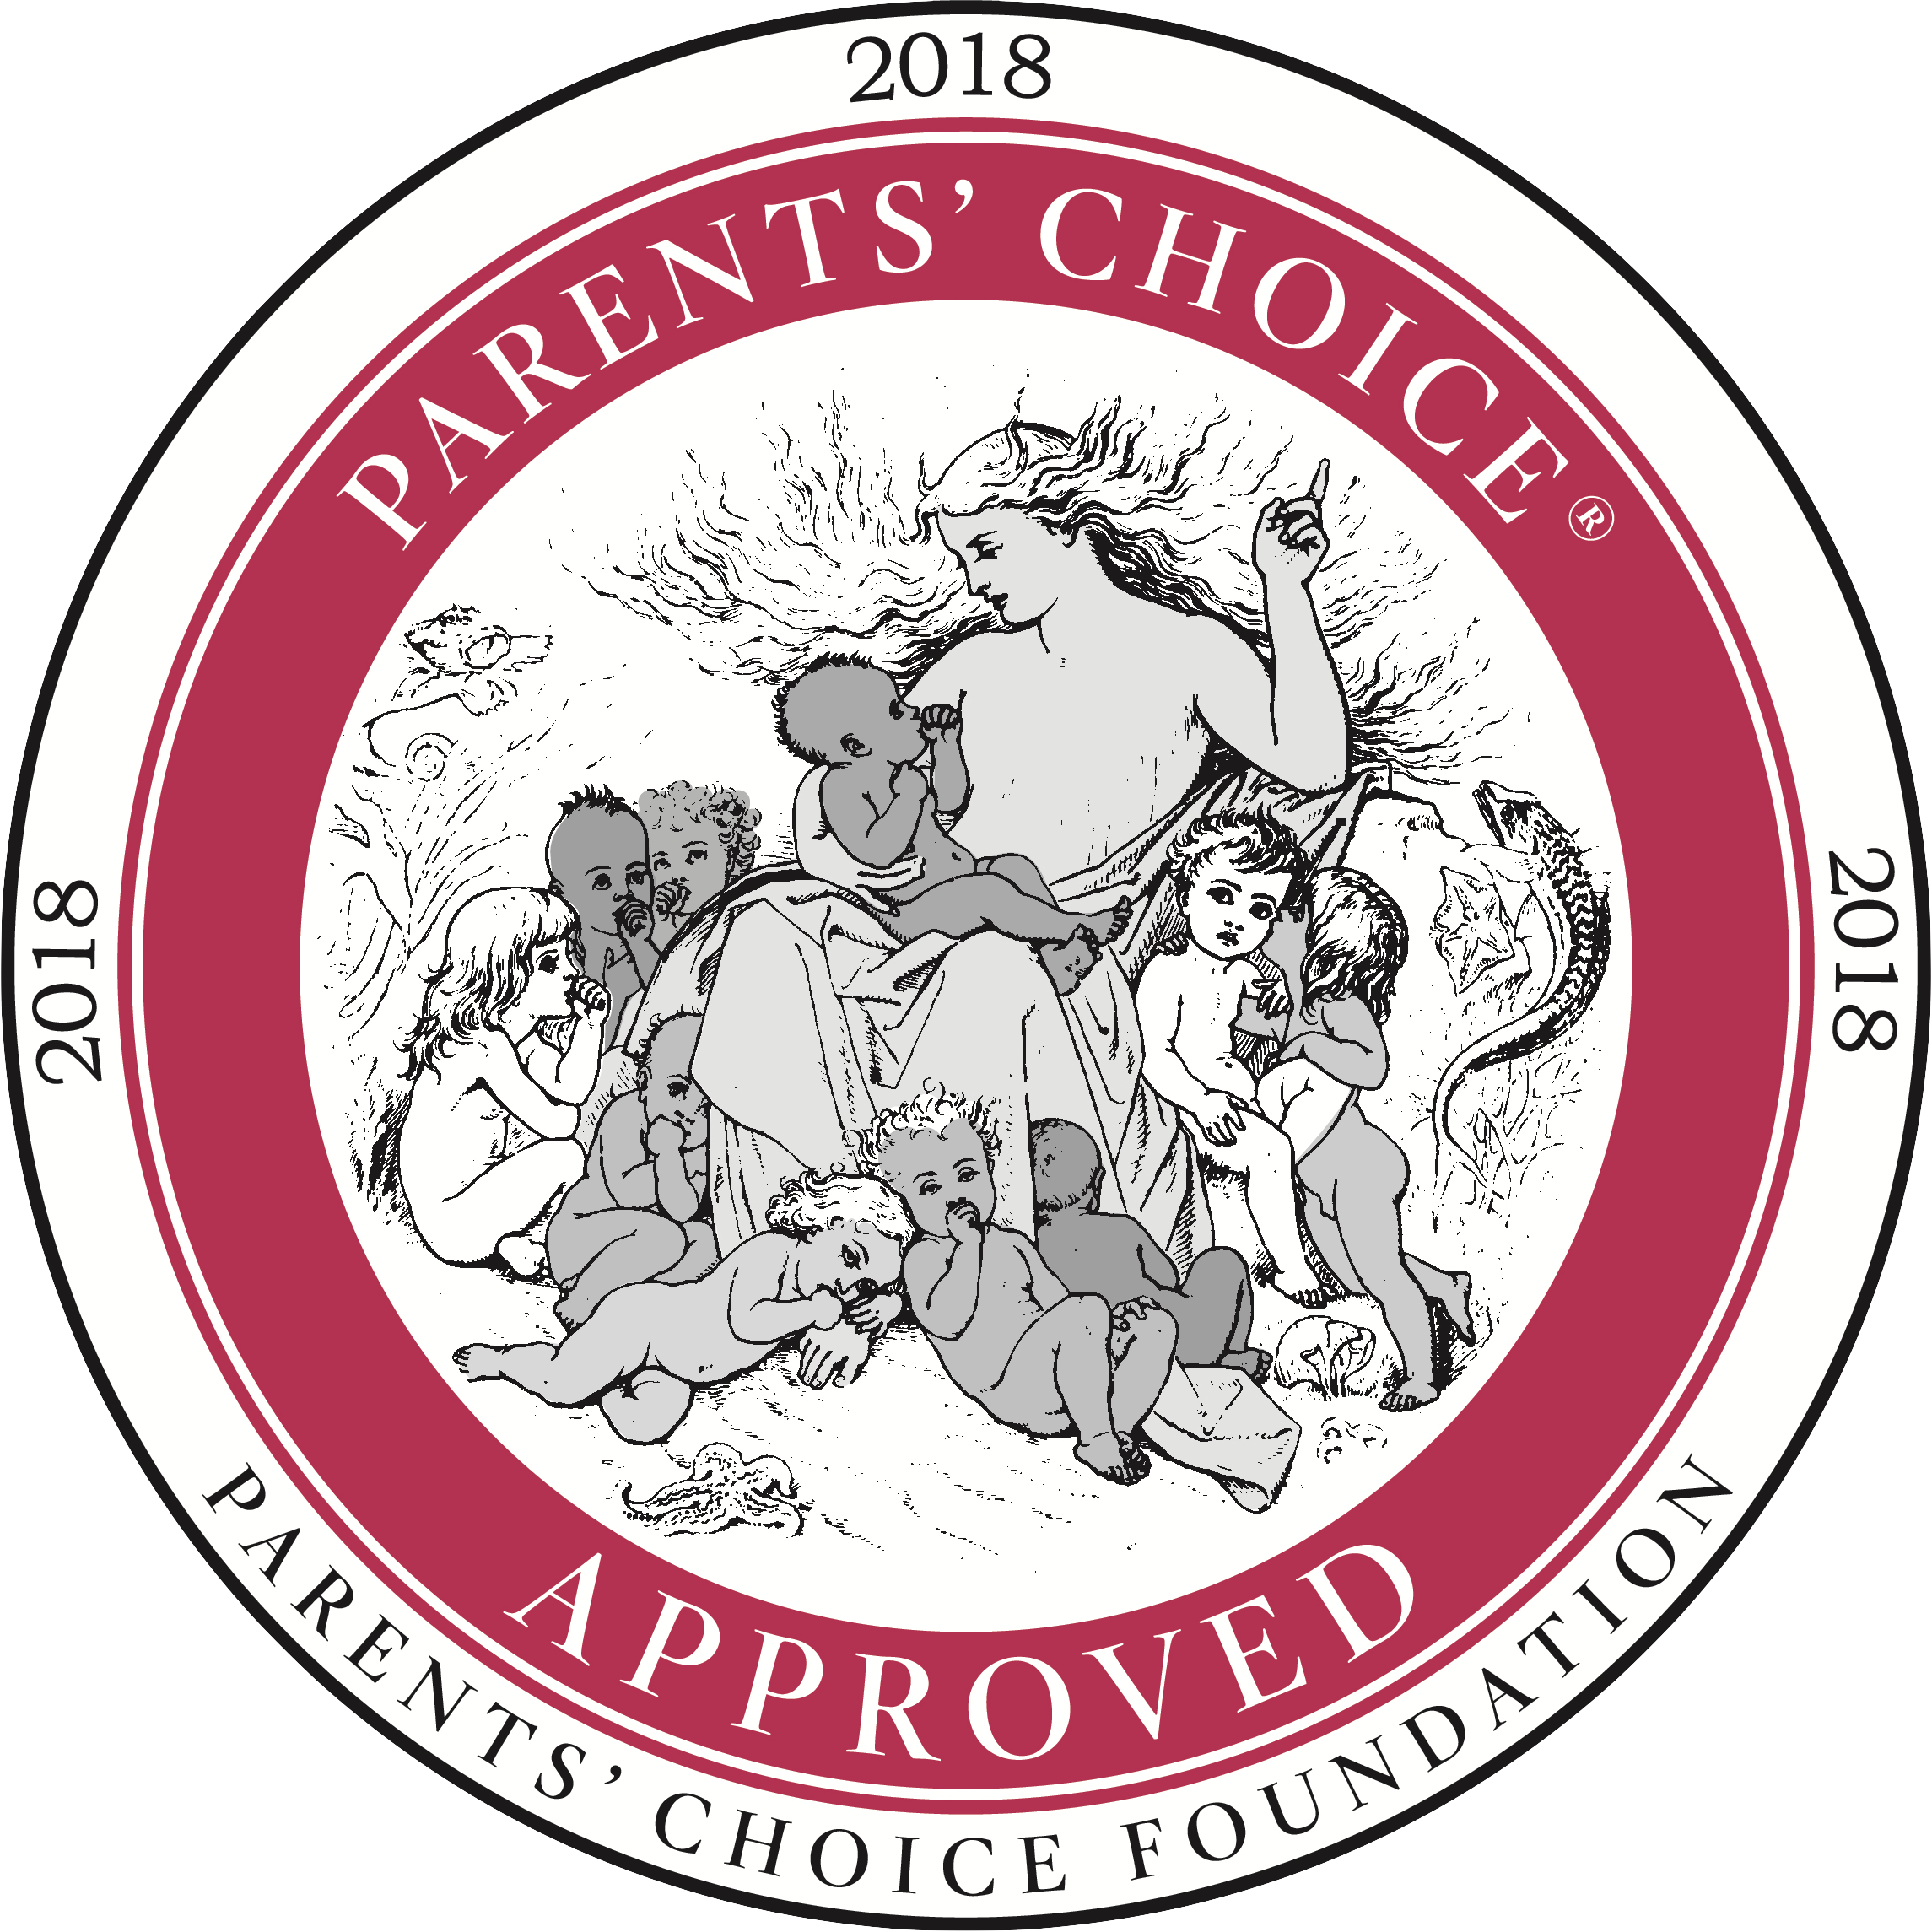 Parents Choice Award approved 2018 copy 2.png